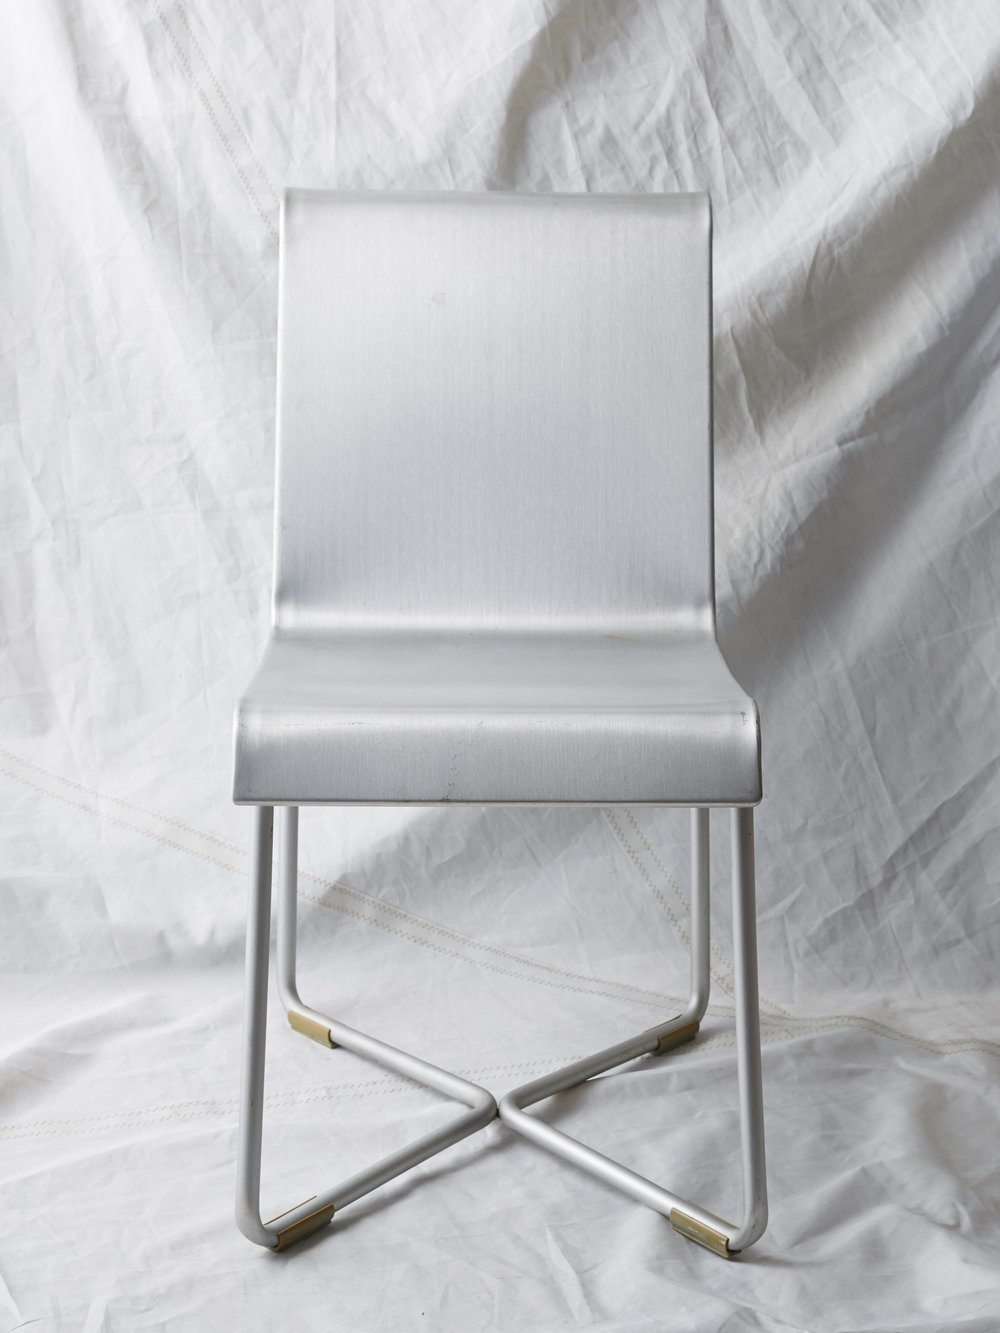 "CH020 Frank Gehry SUPERLIGHT chair 32"" H x 17"" W x 26"" D $300/week Set of 1"